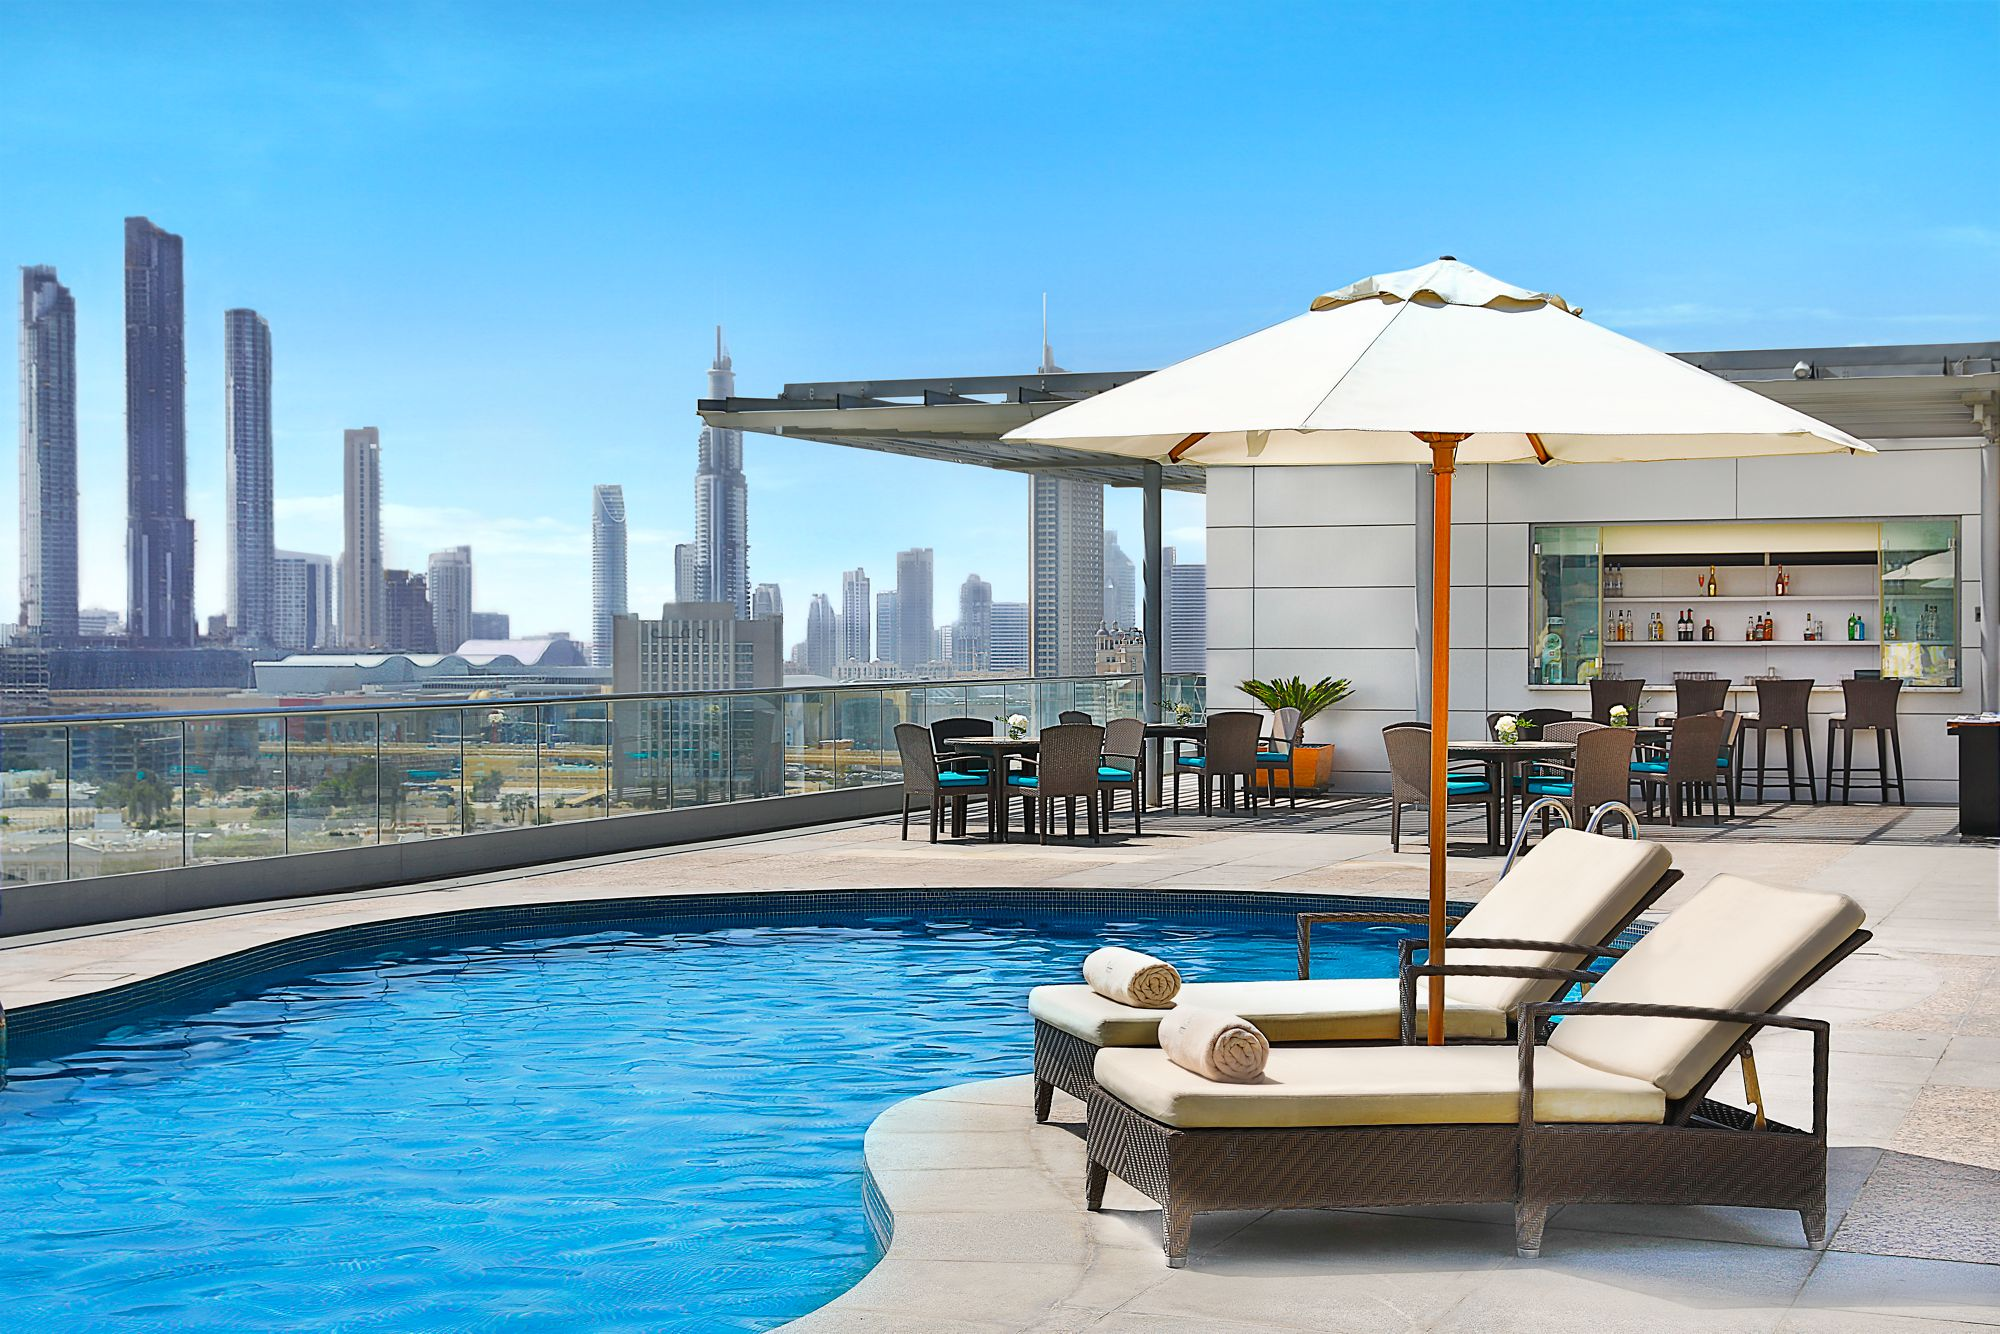 Outdoor pool overlooking the city skyline and flanked by outdoor seating, a bar and two chaise lounges